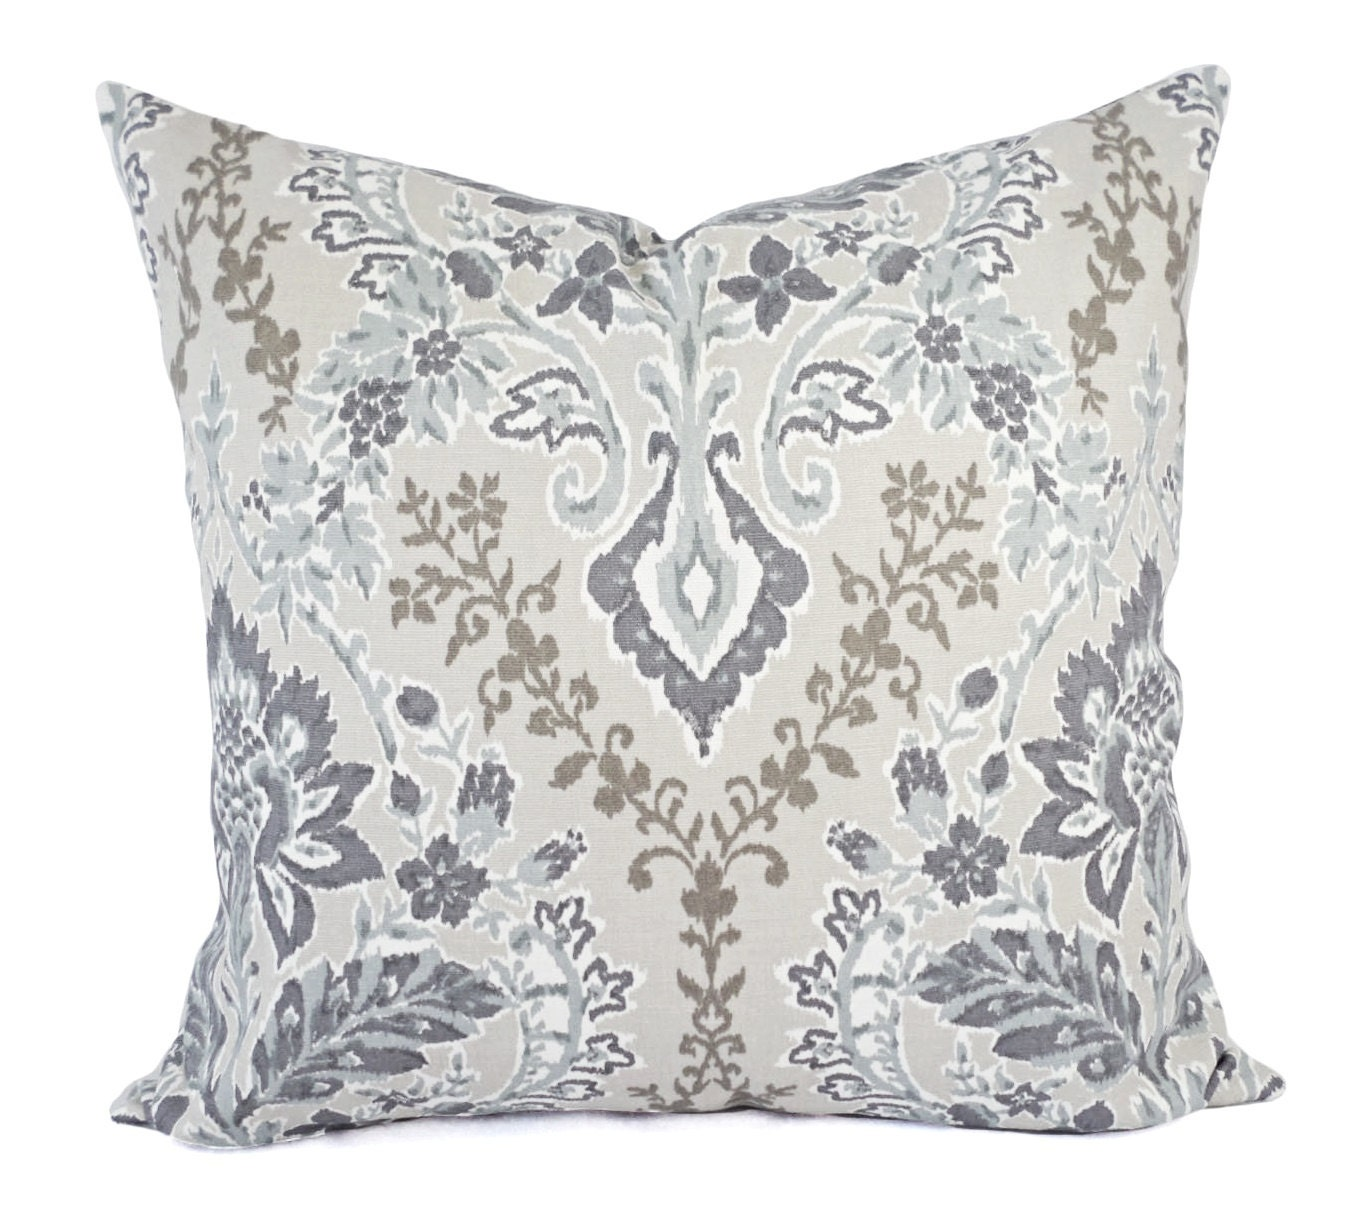 Purple And White Decorative Pillows : Two Decorative Pillow Covers Purple Pillow Cover Grey